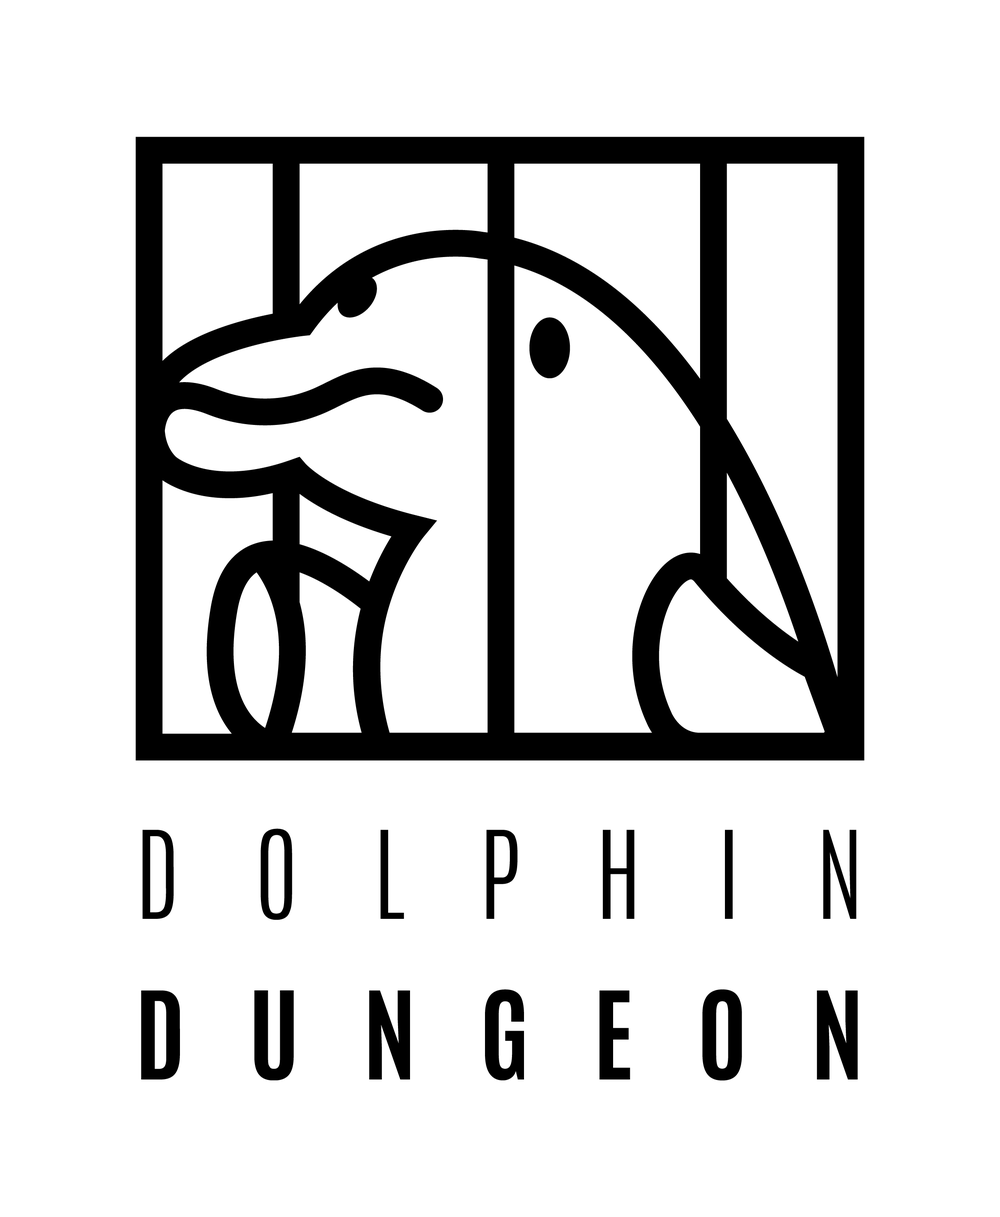 dolphin dungeon final logo-05.png